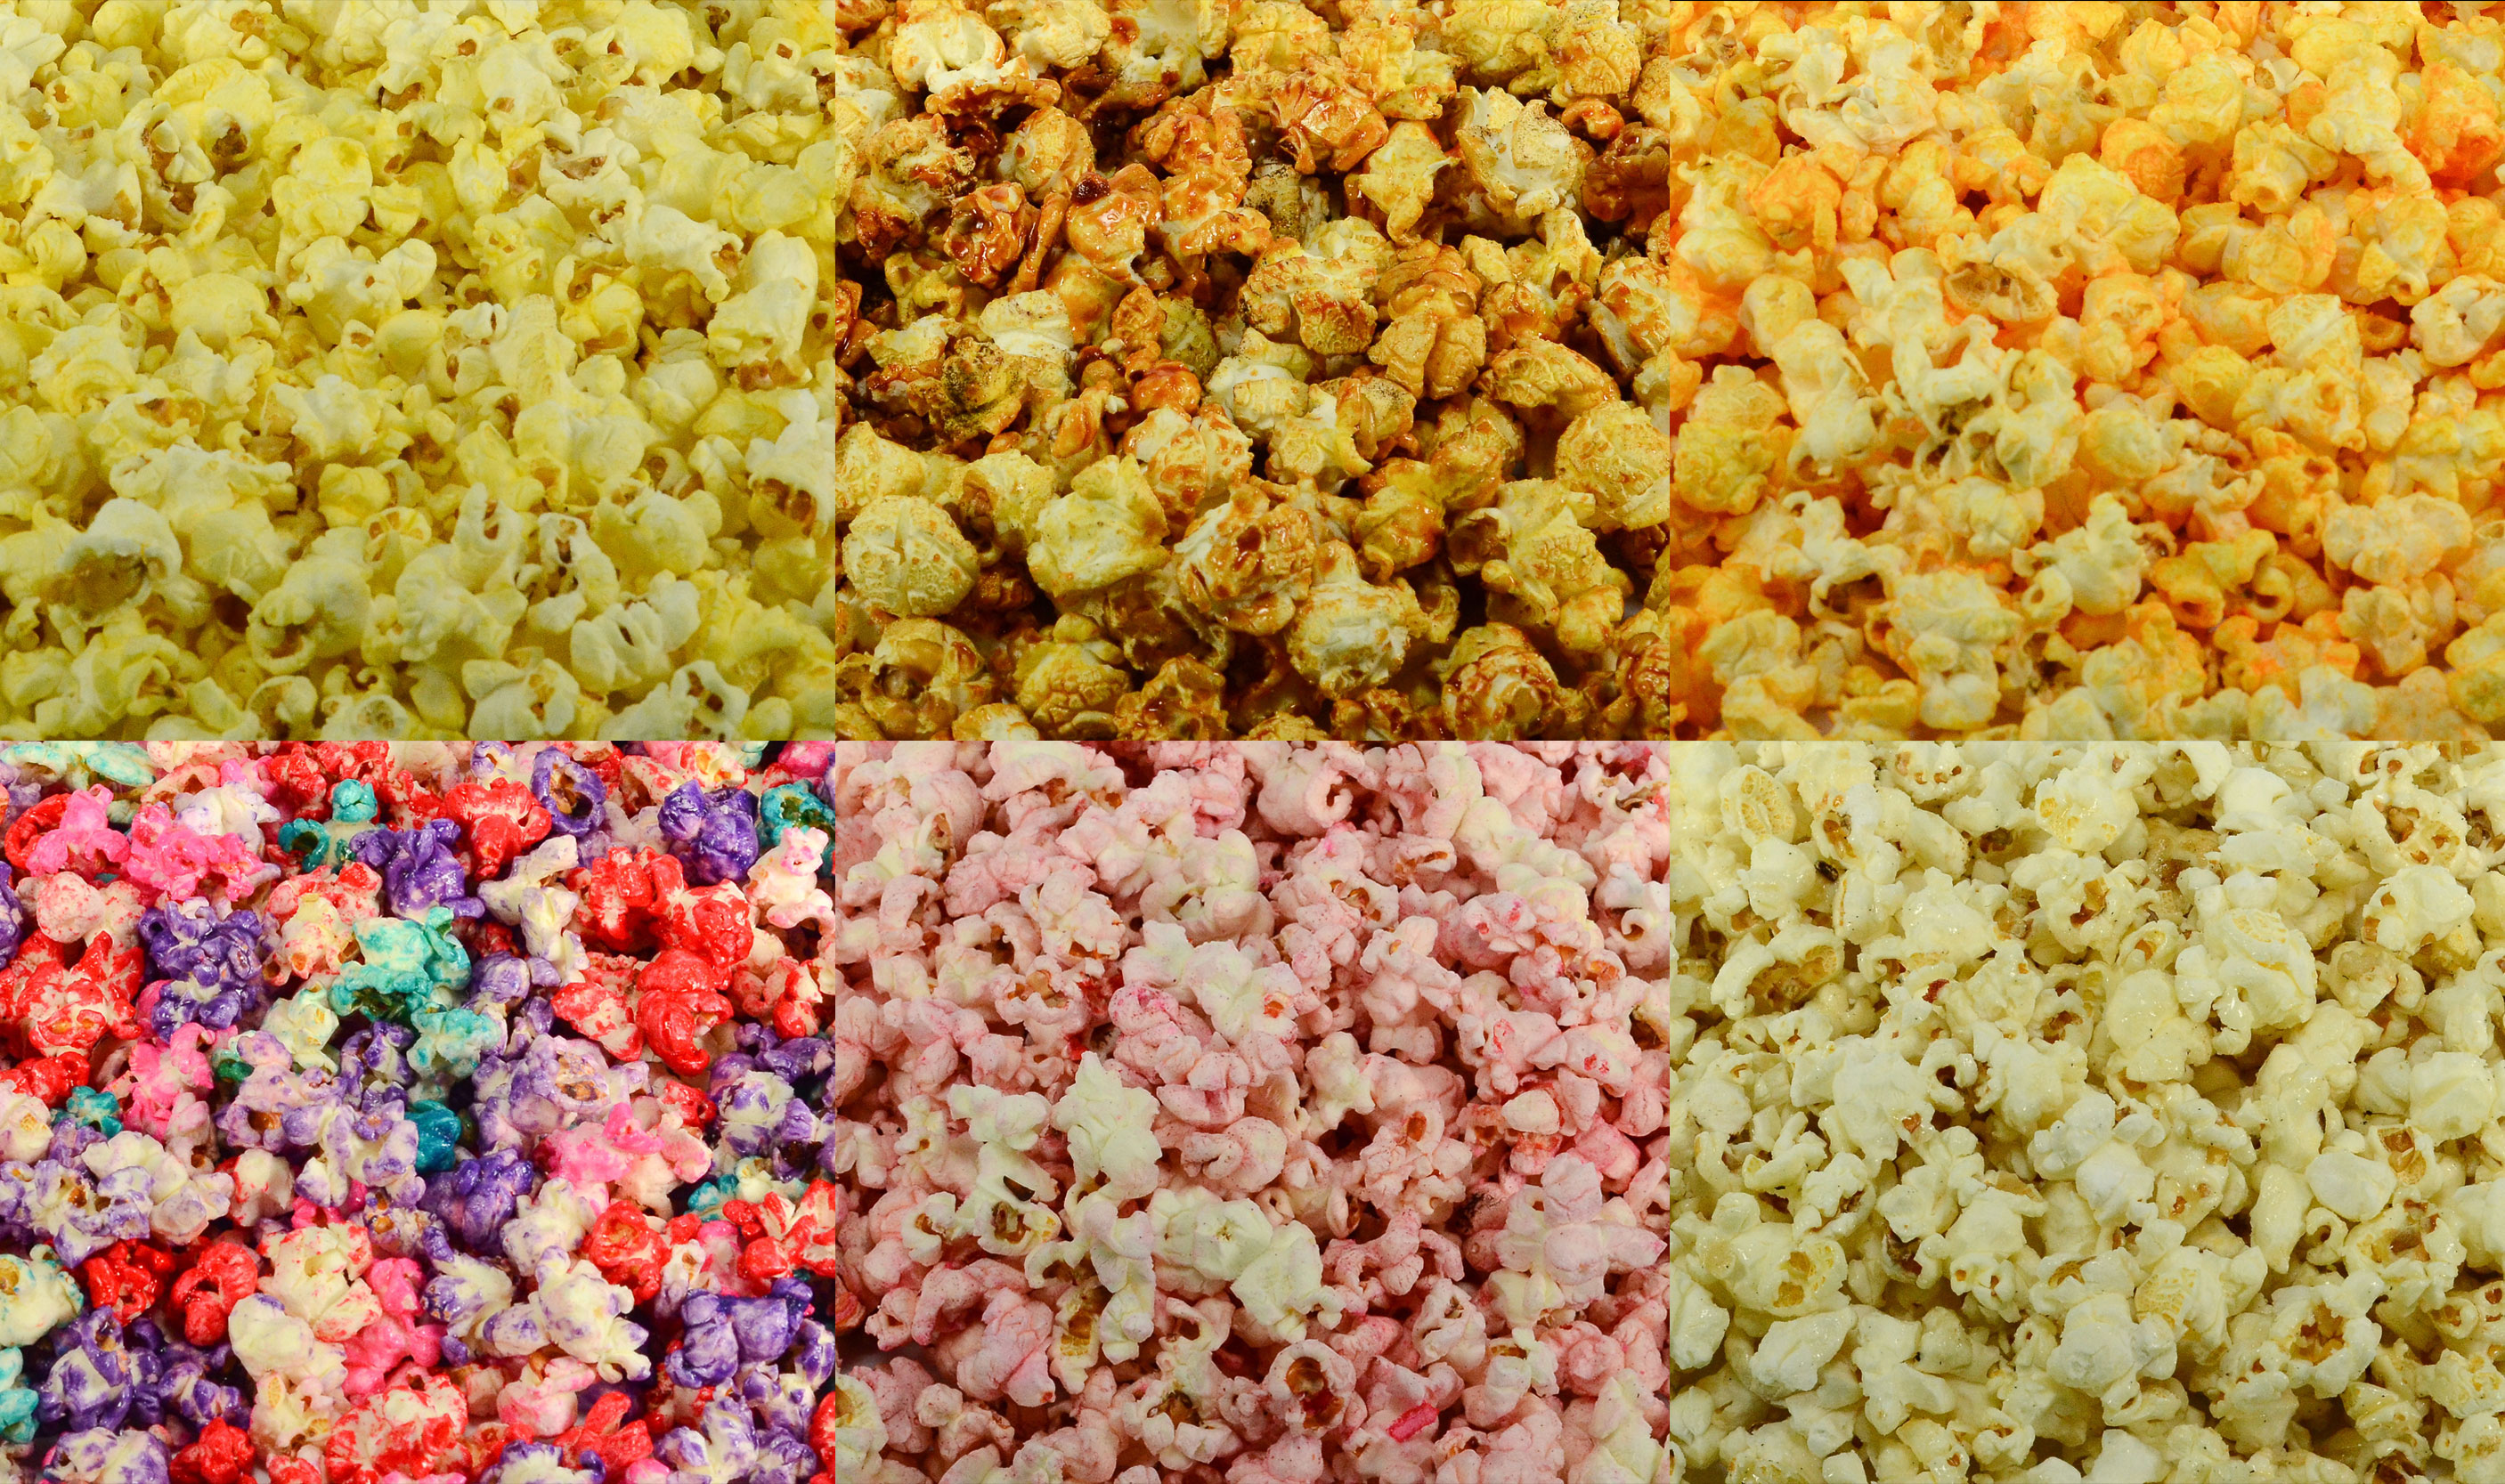 colored popcorn sample/snack pack